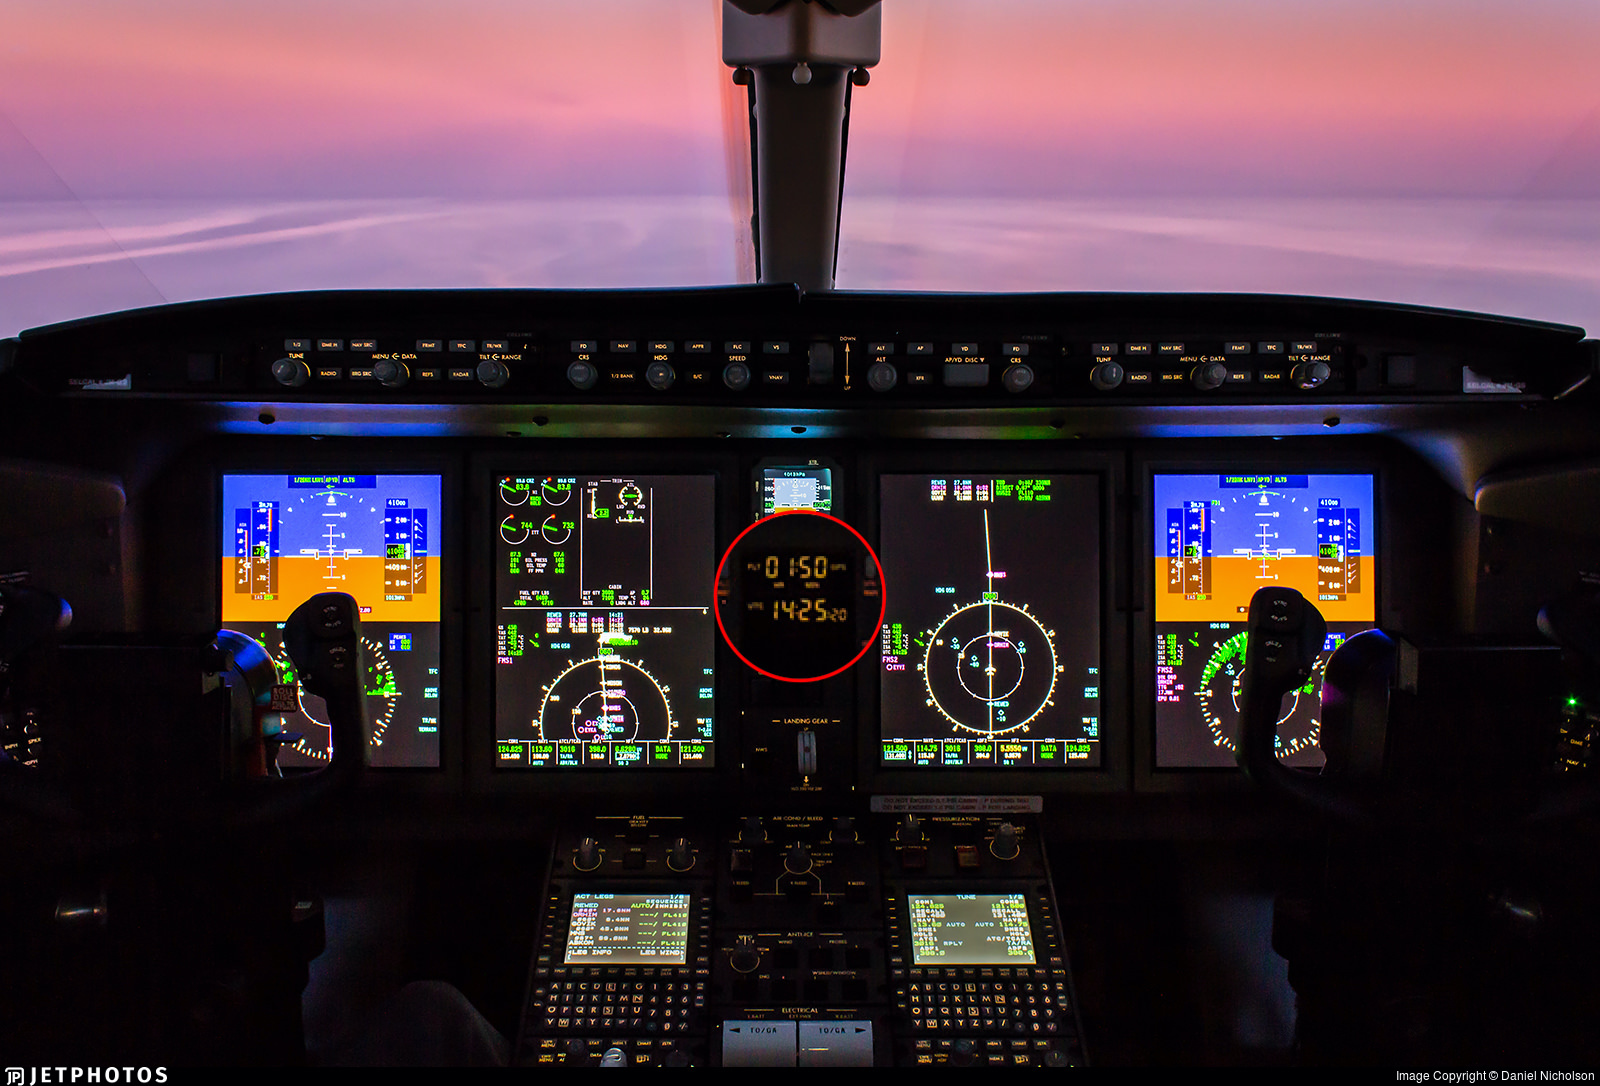 Bombardier Challenger flight deck with the UTC clock magnified for effect